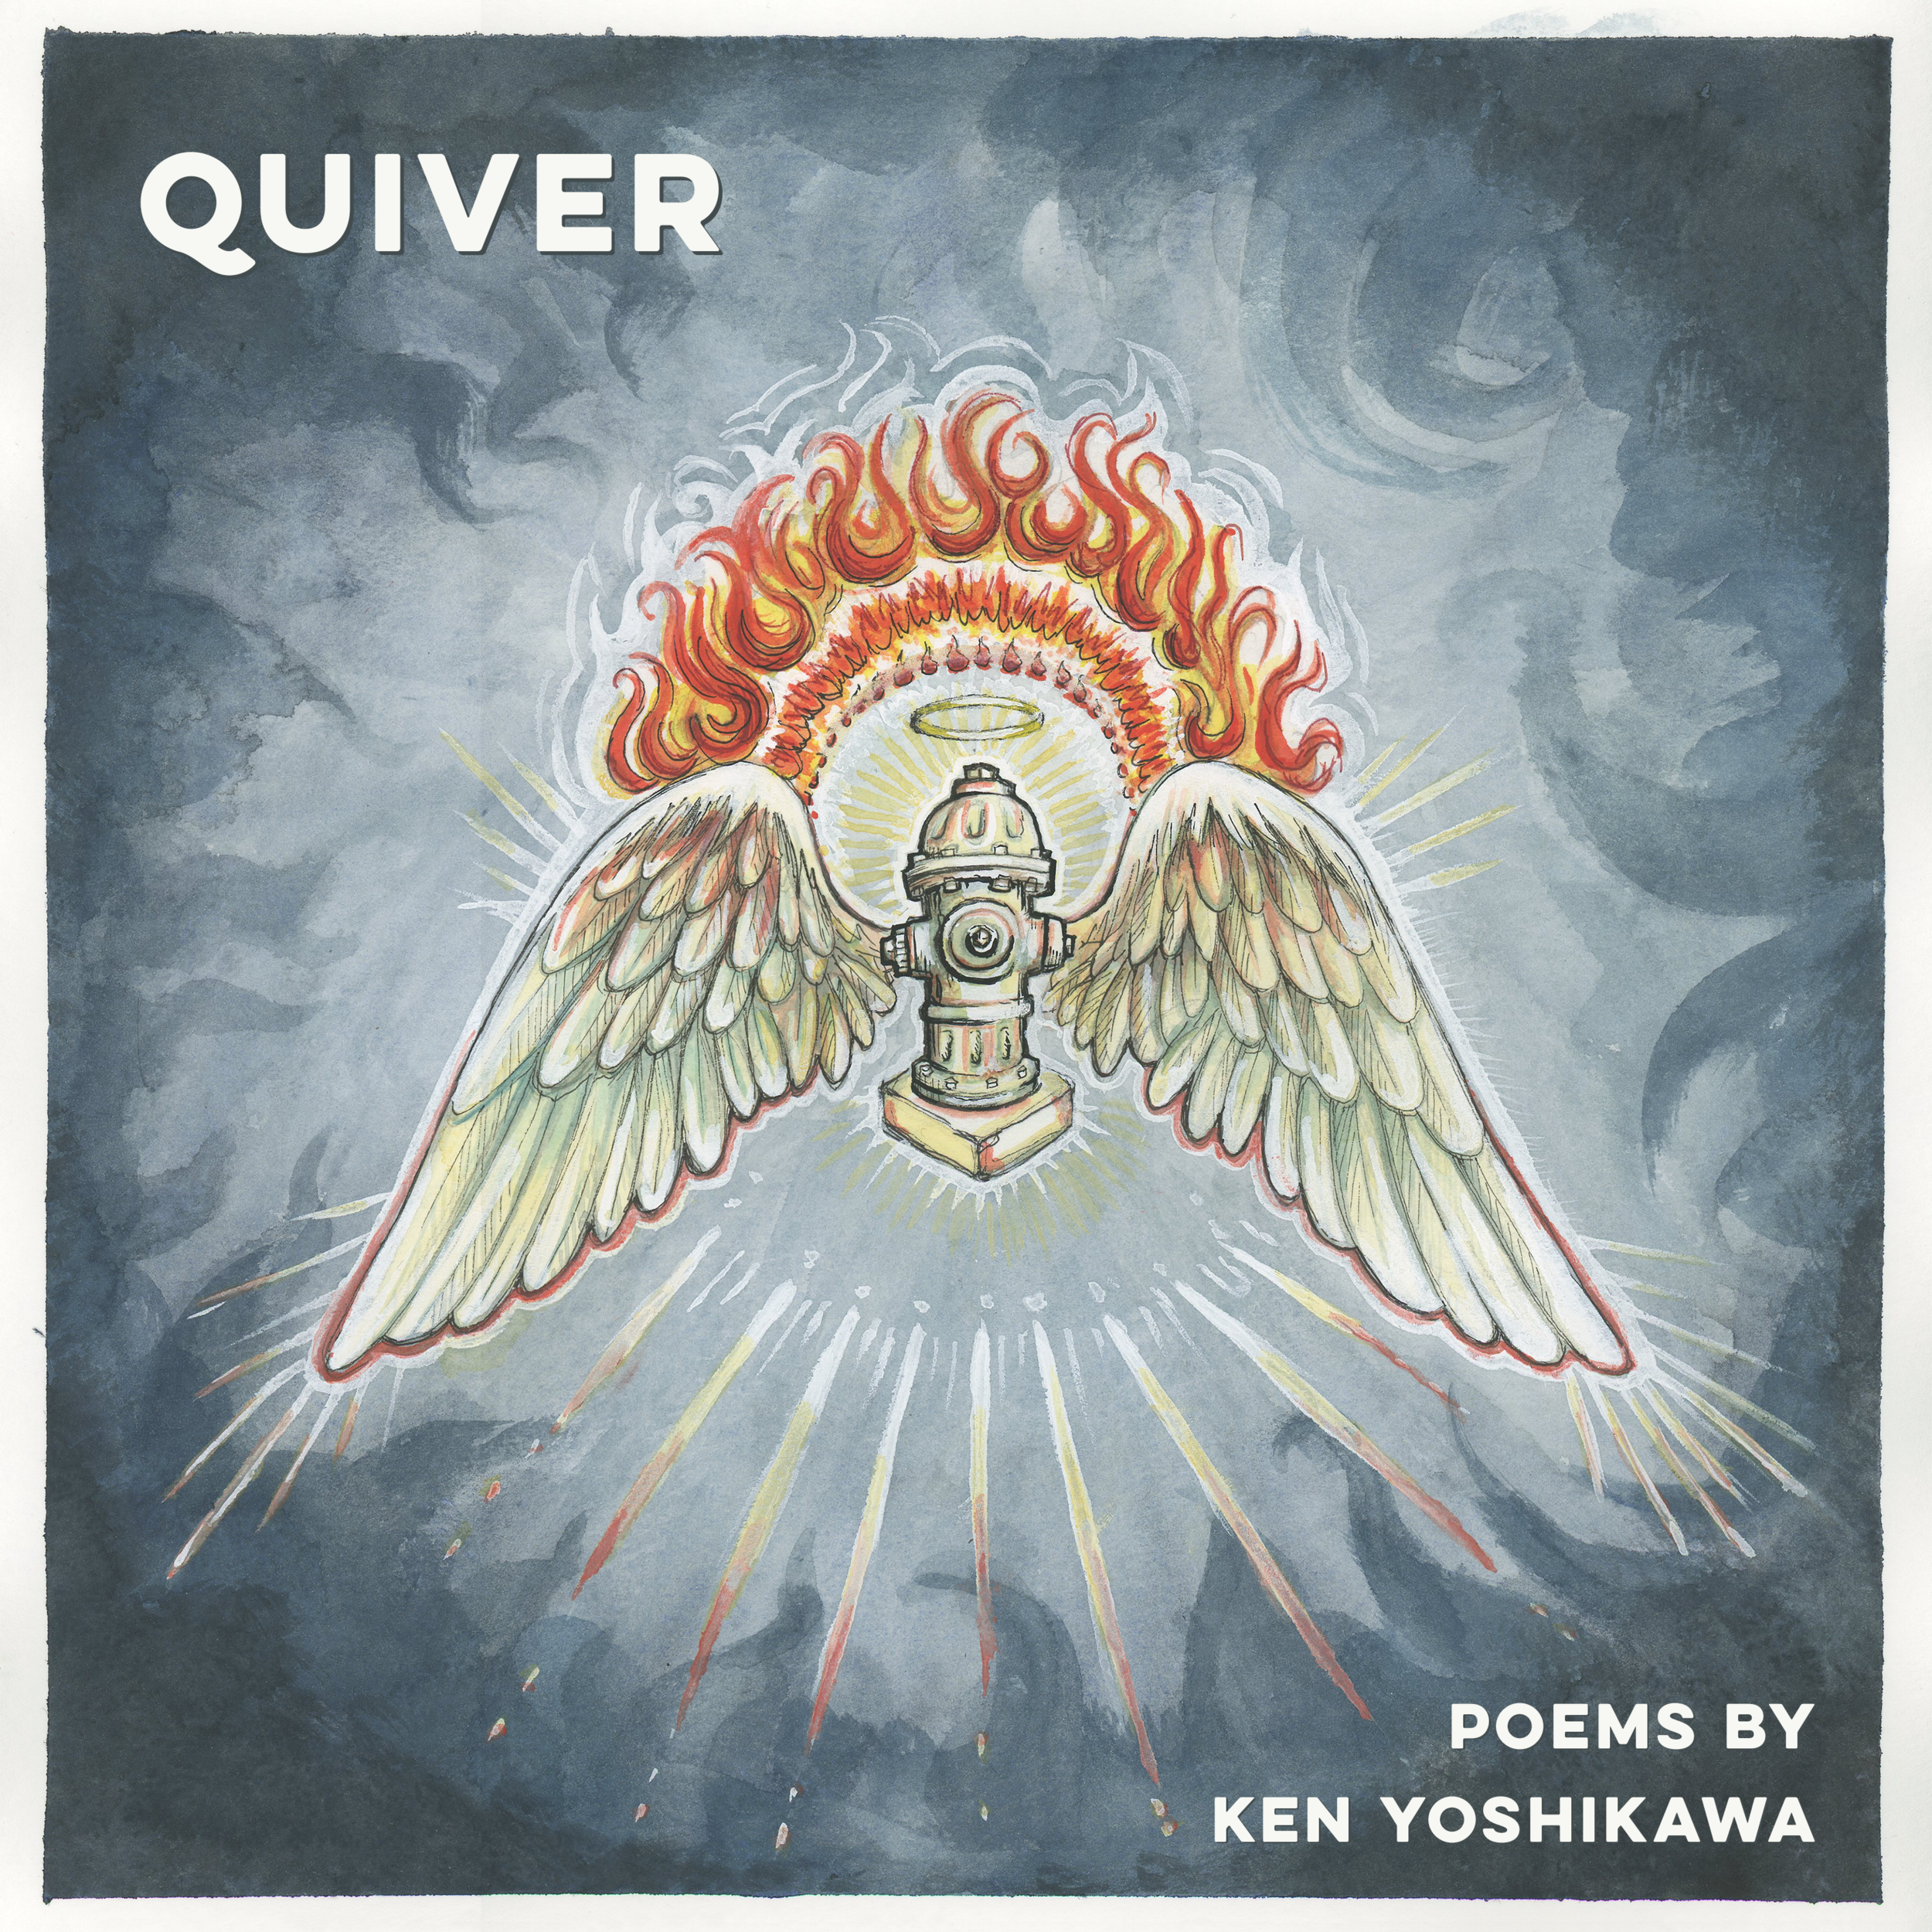 quiver-albumcover72dpiScreen.png